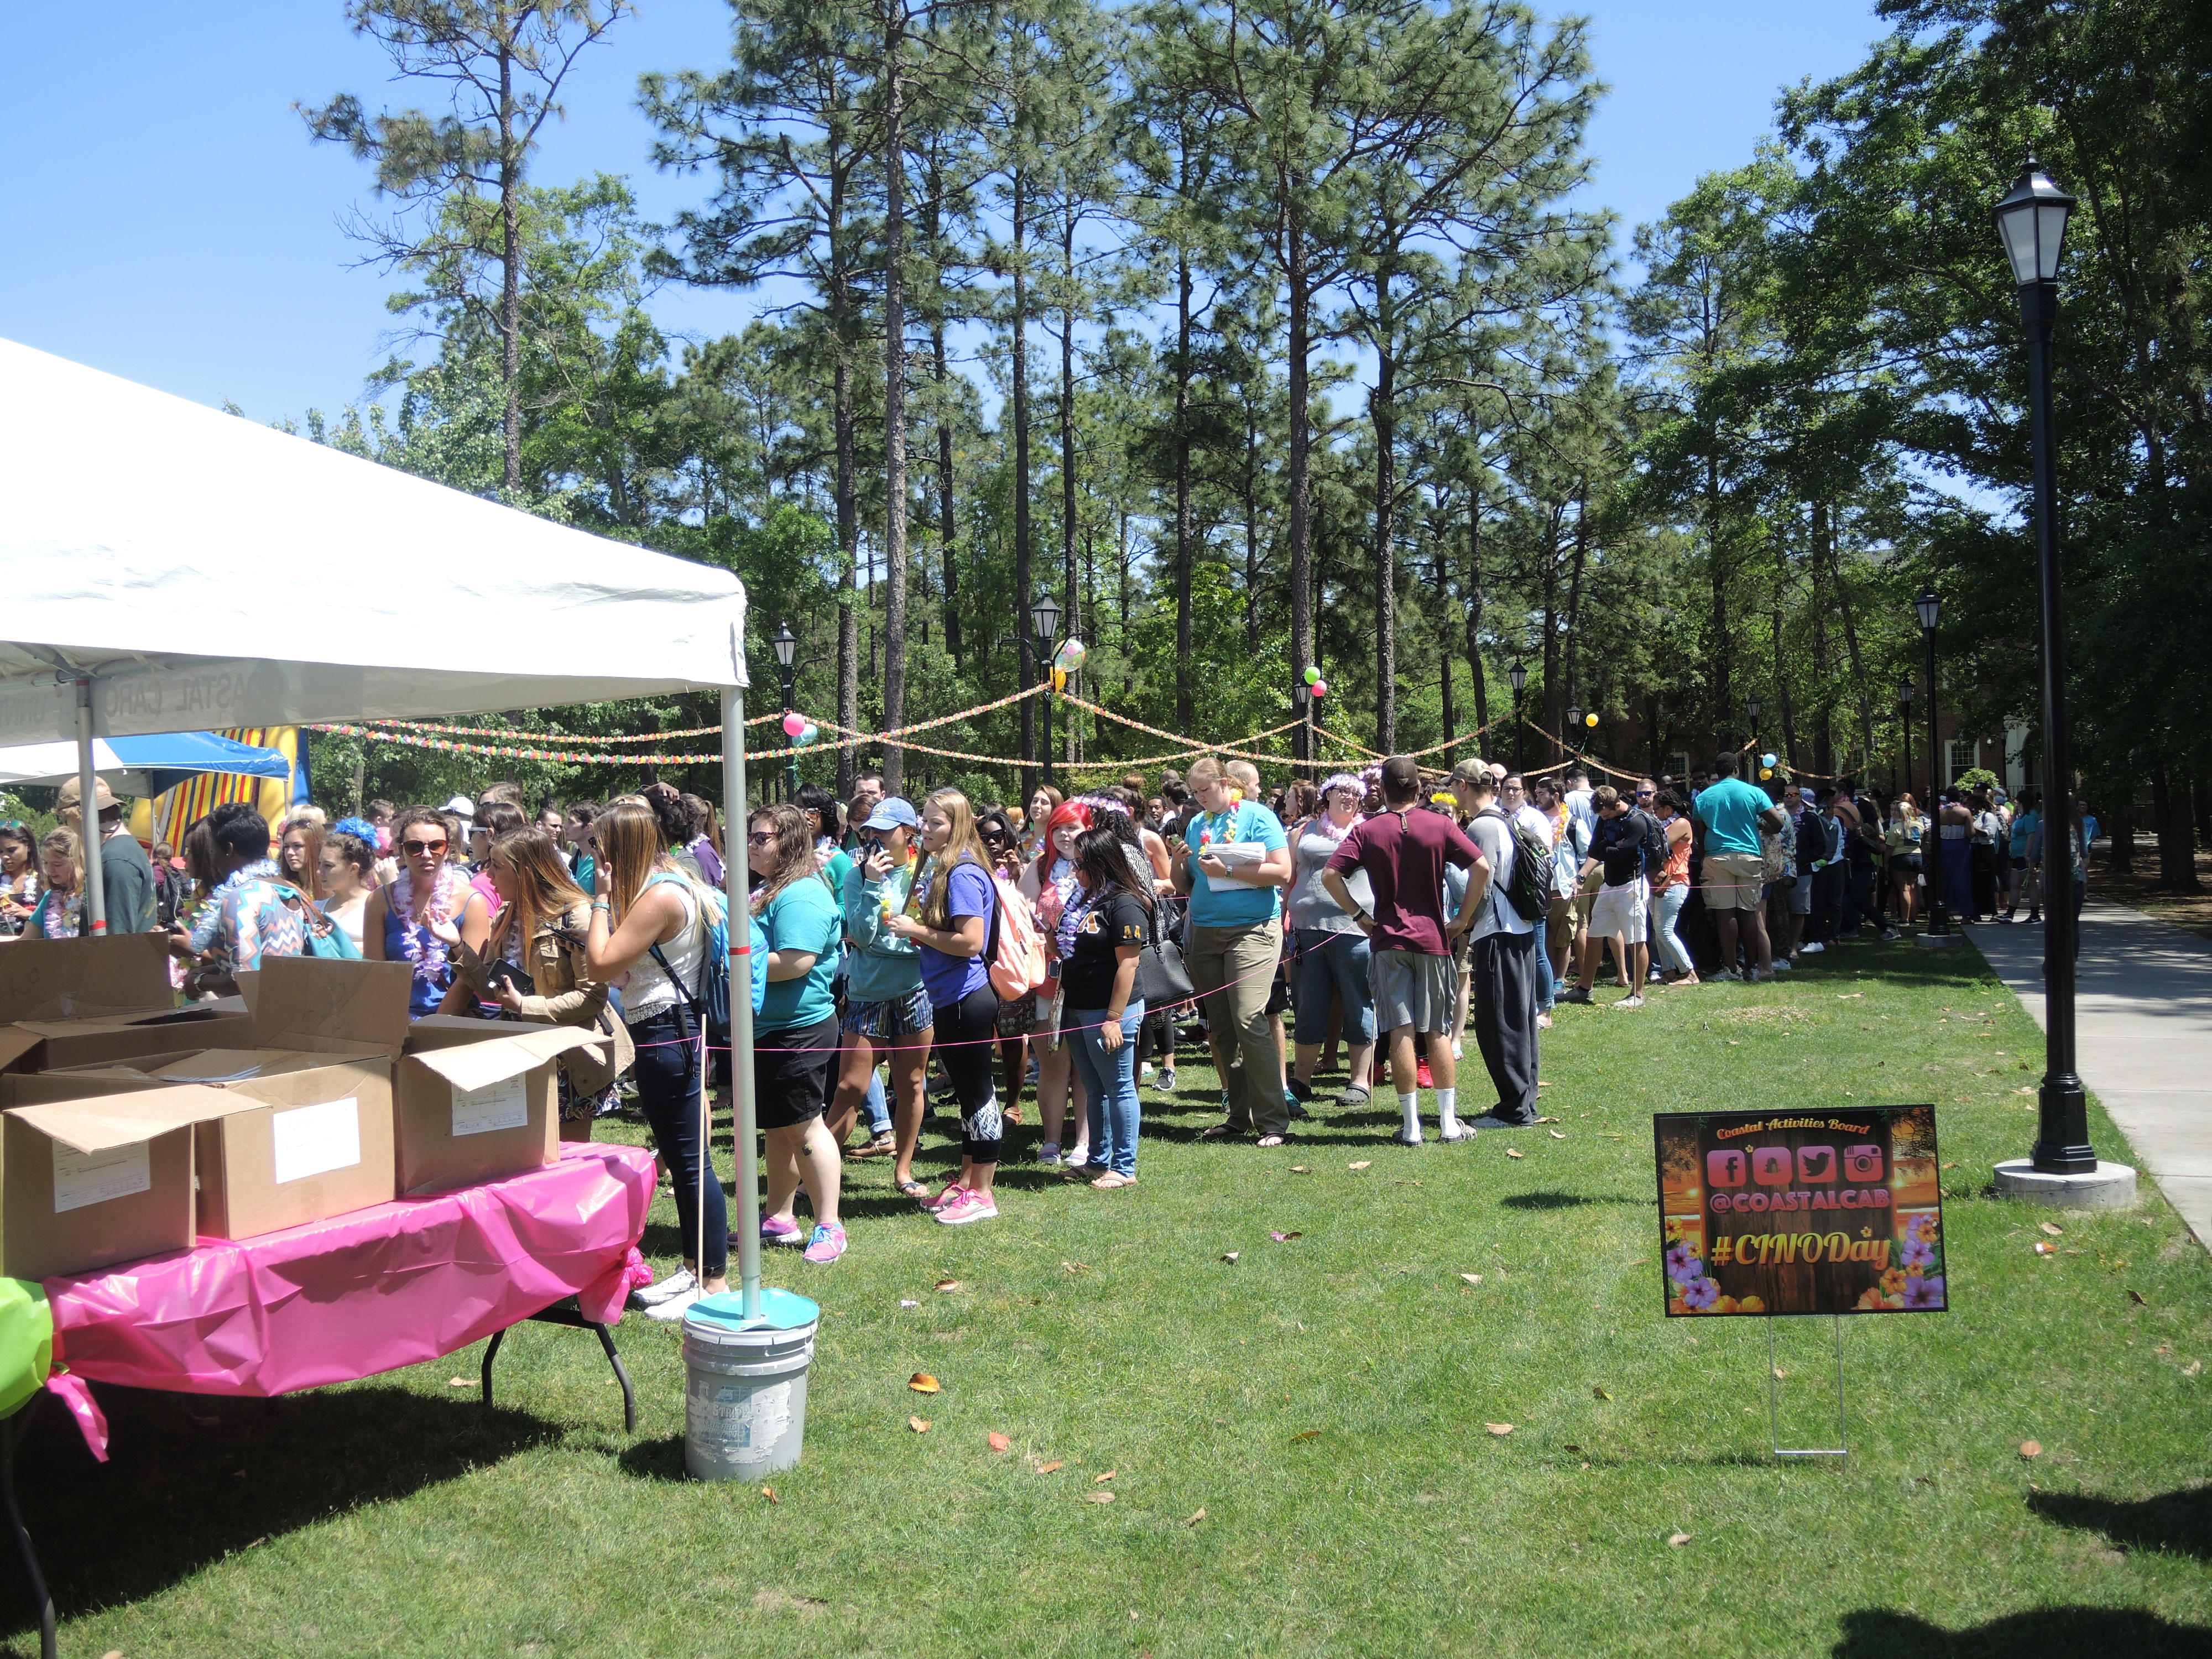 Students lined up well before the noon start time of CINO Day so they could get the free shirt of this year's event.